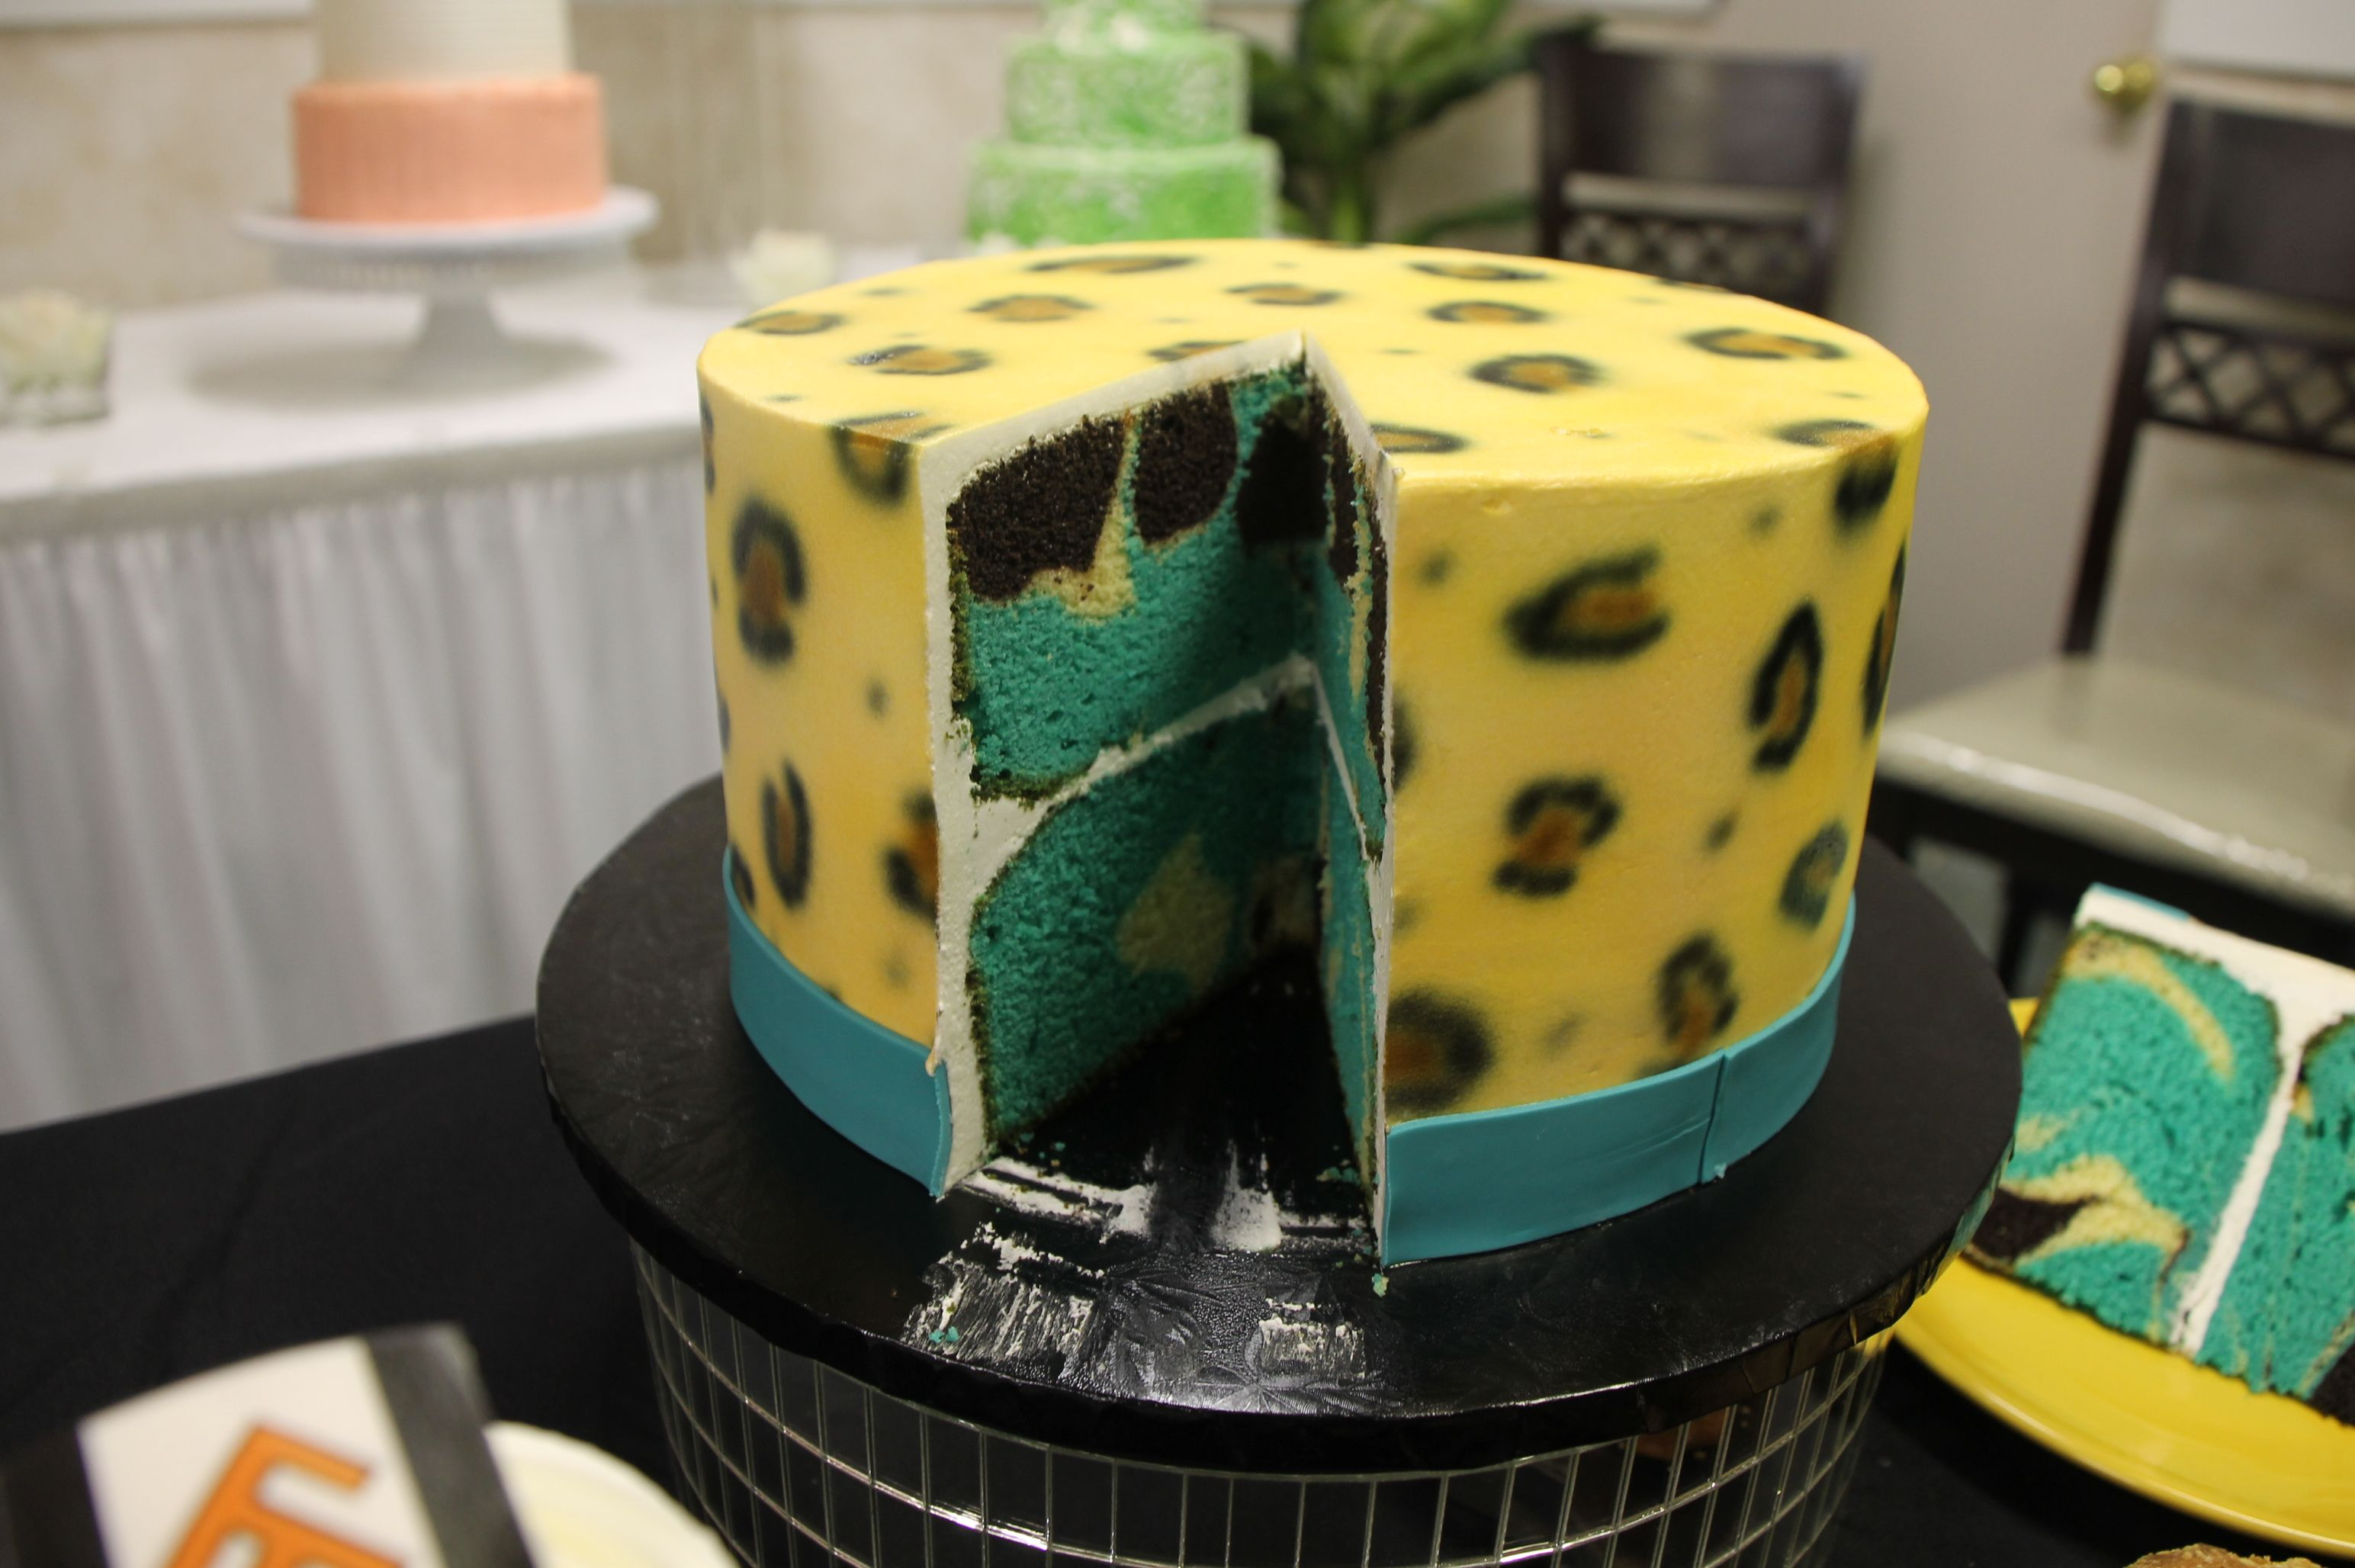 Inside And Out Jags Cake Edgewood Bakery 1012 Ave S Jacksonville Fl 32205 904 389 8054